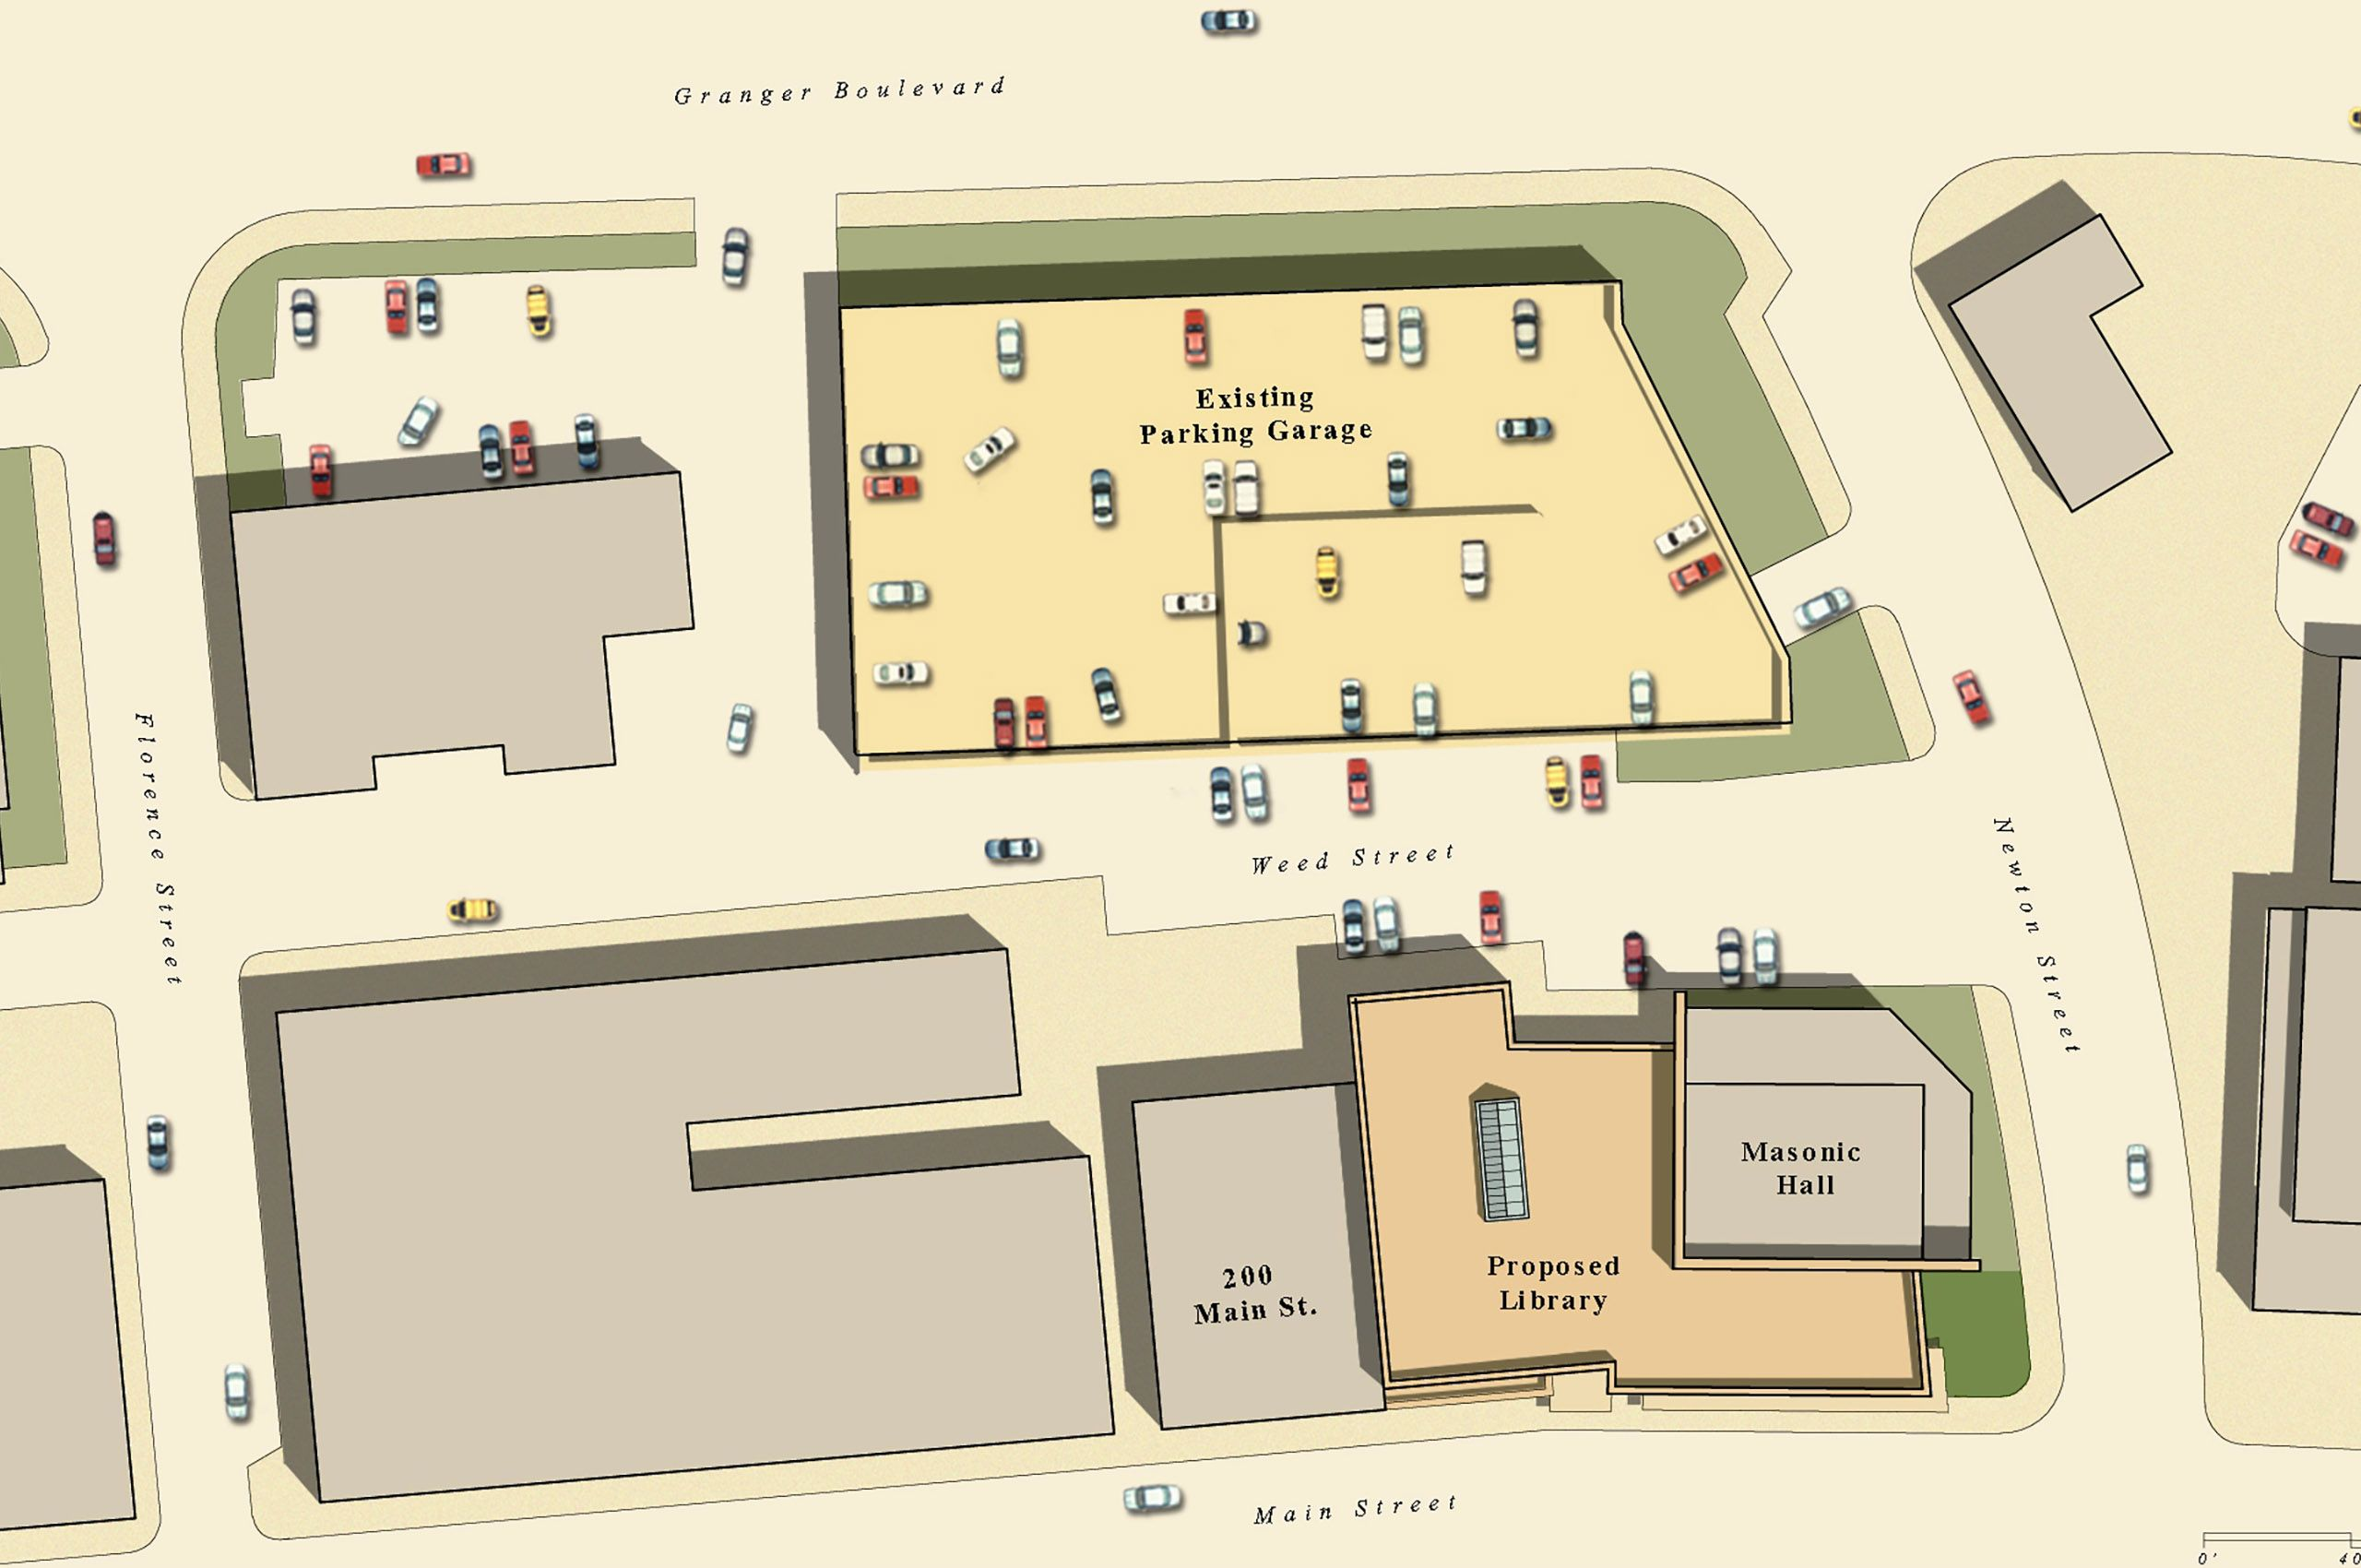 MarlboroughLibrary-MarlboroughMA-SitePlan.jpg